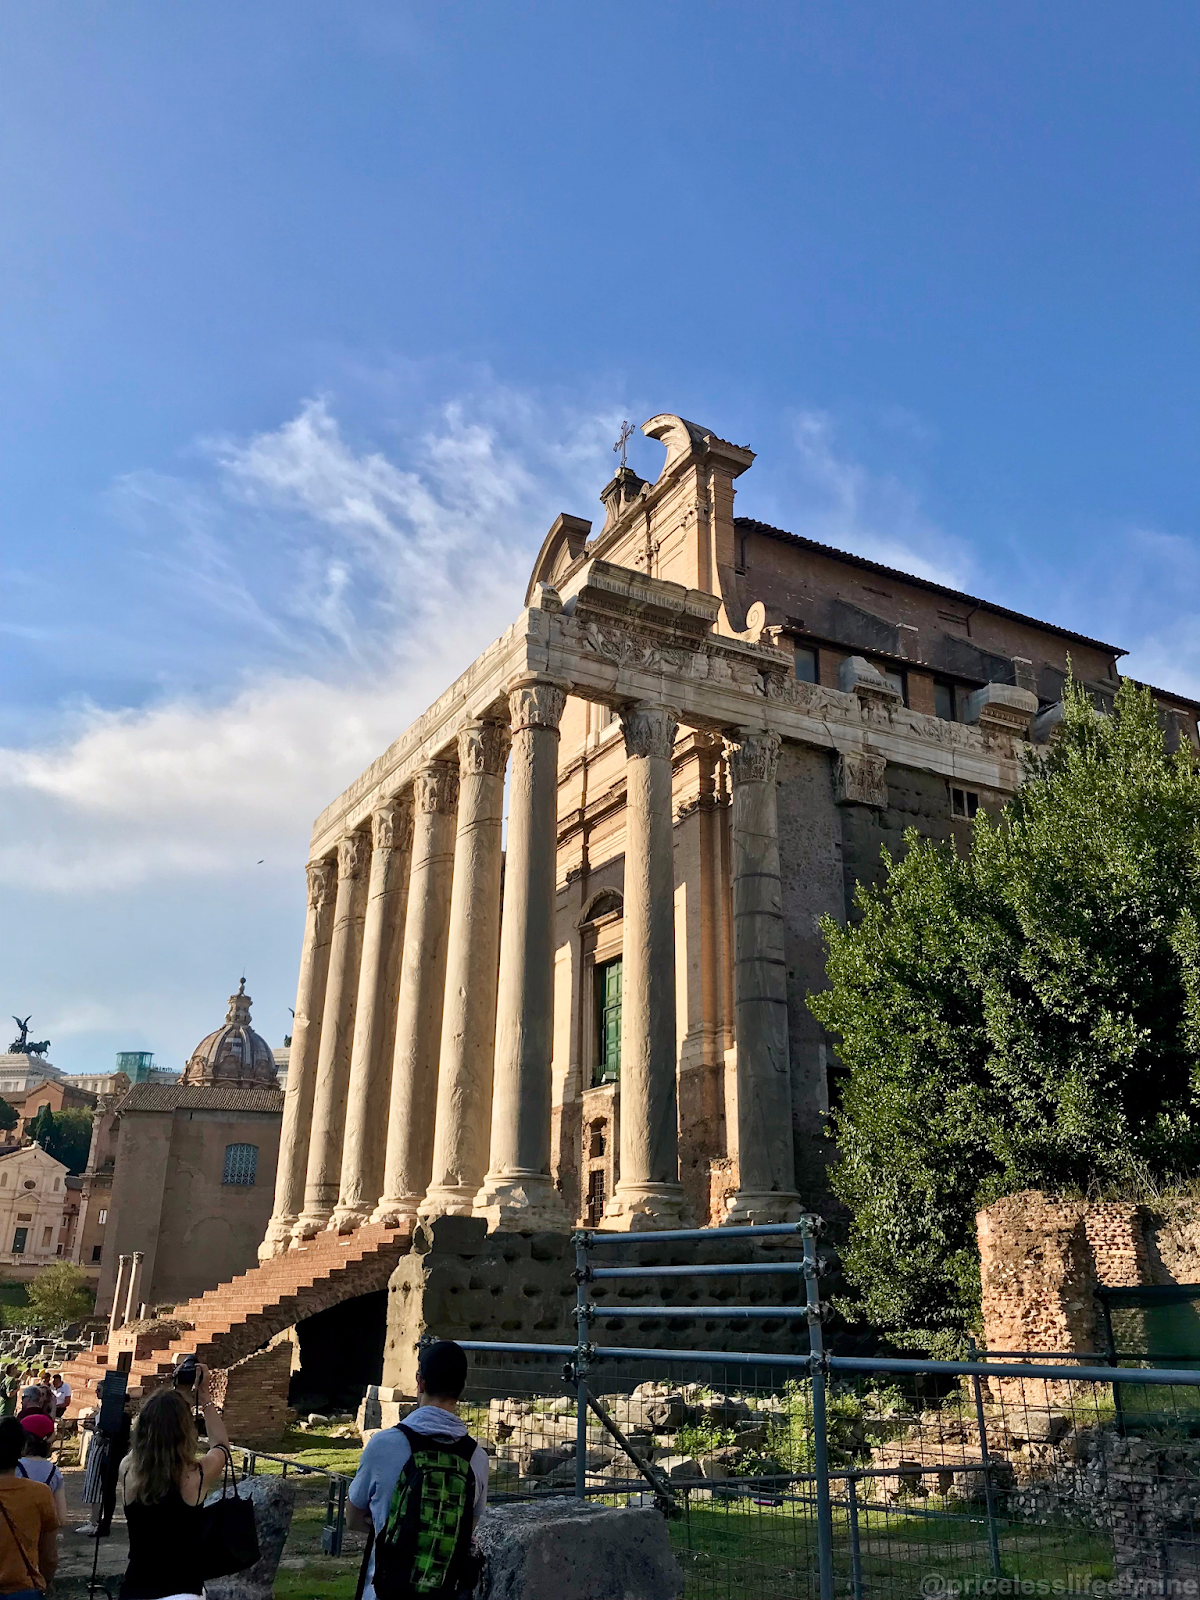 Caesars temple in the Roman Forum